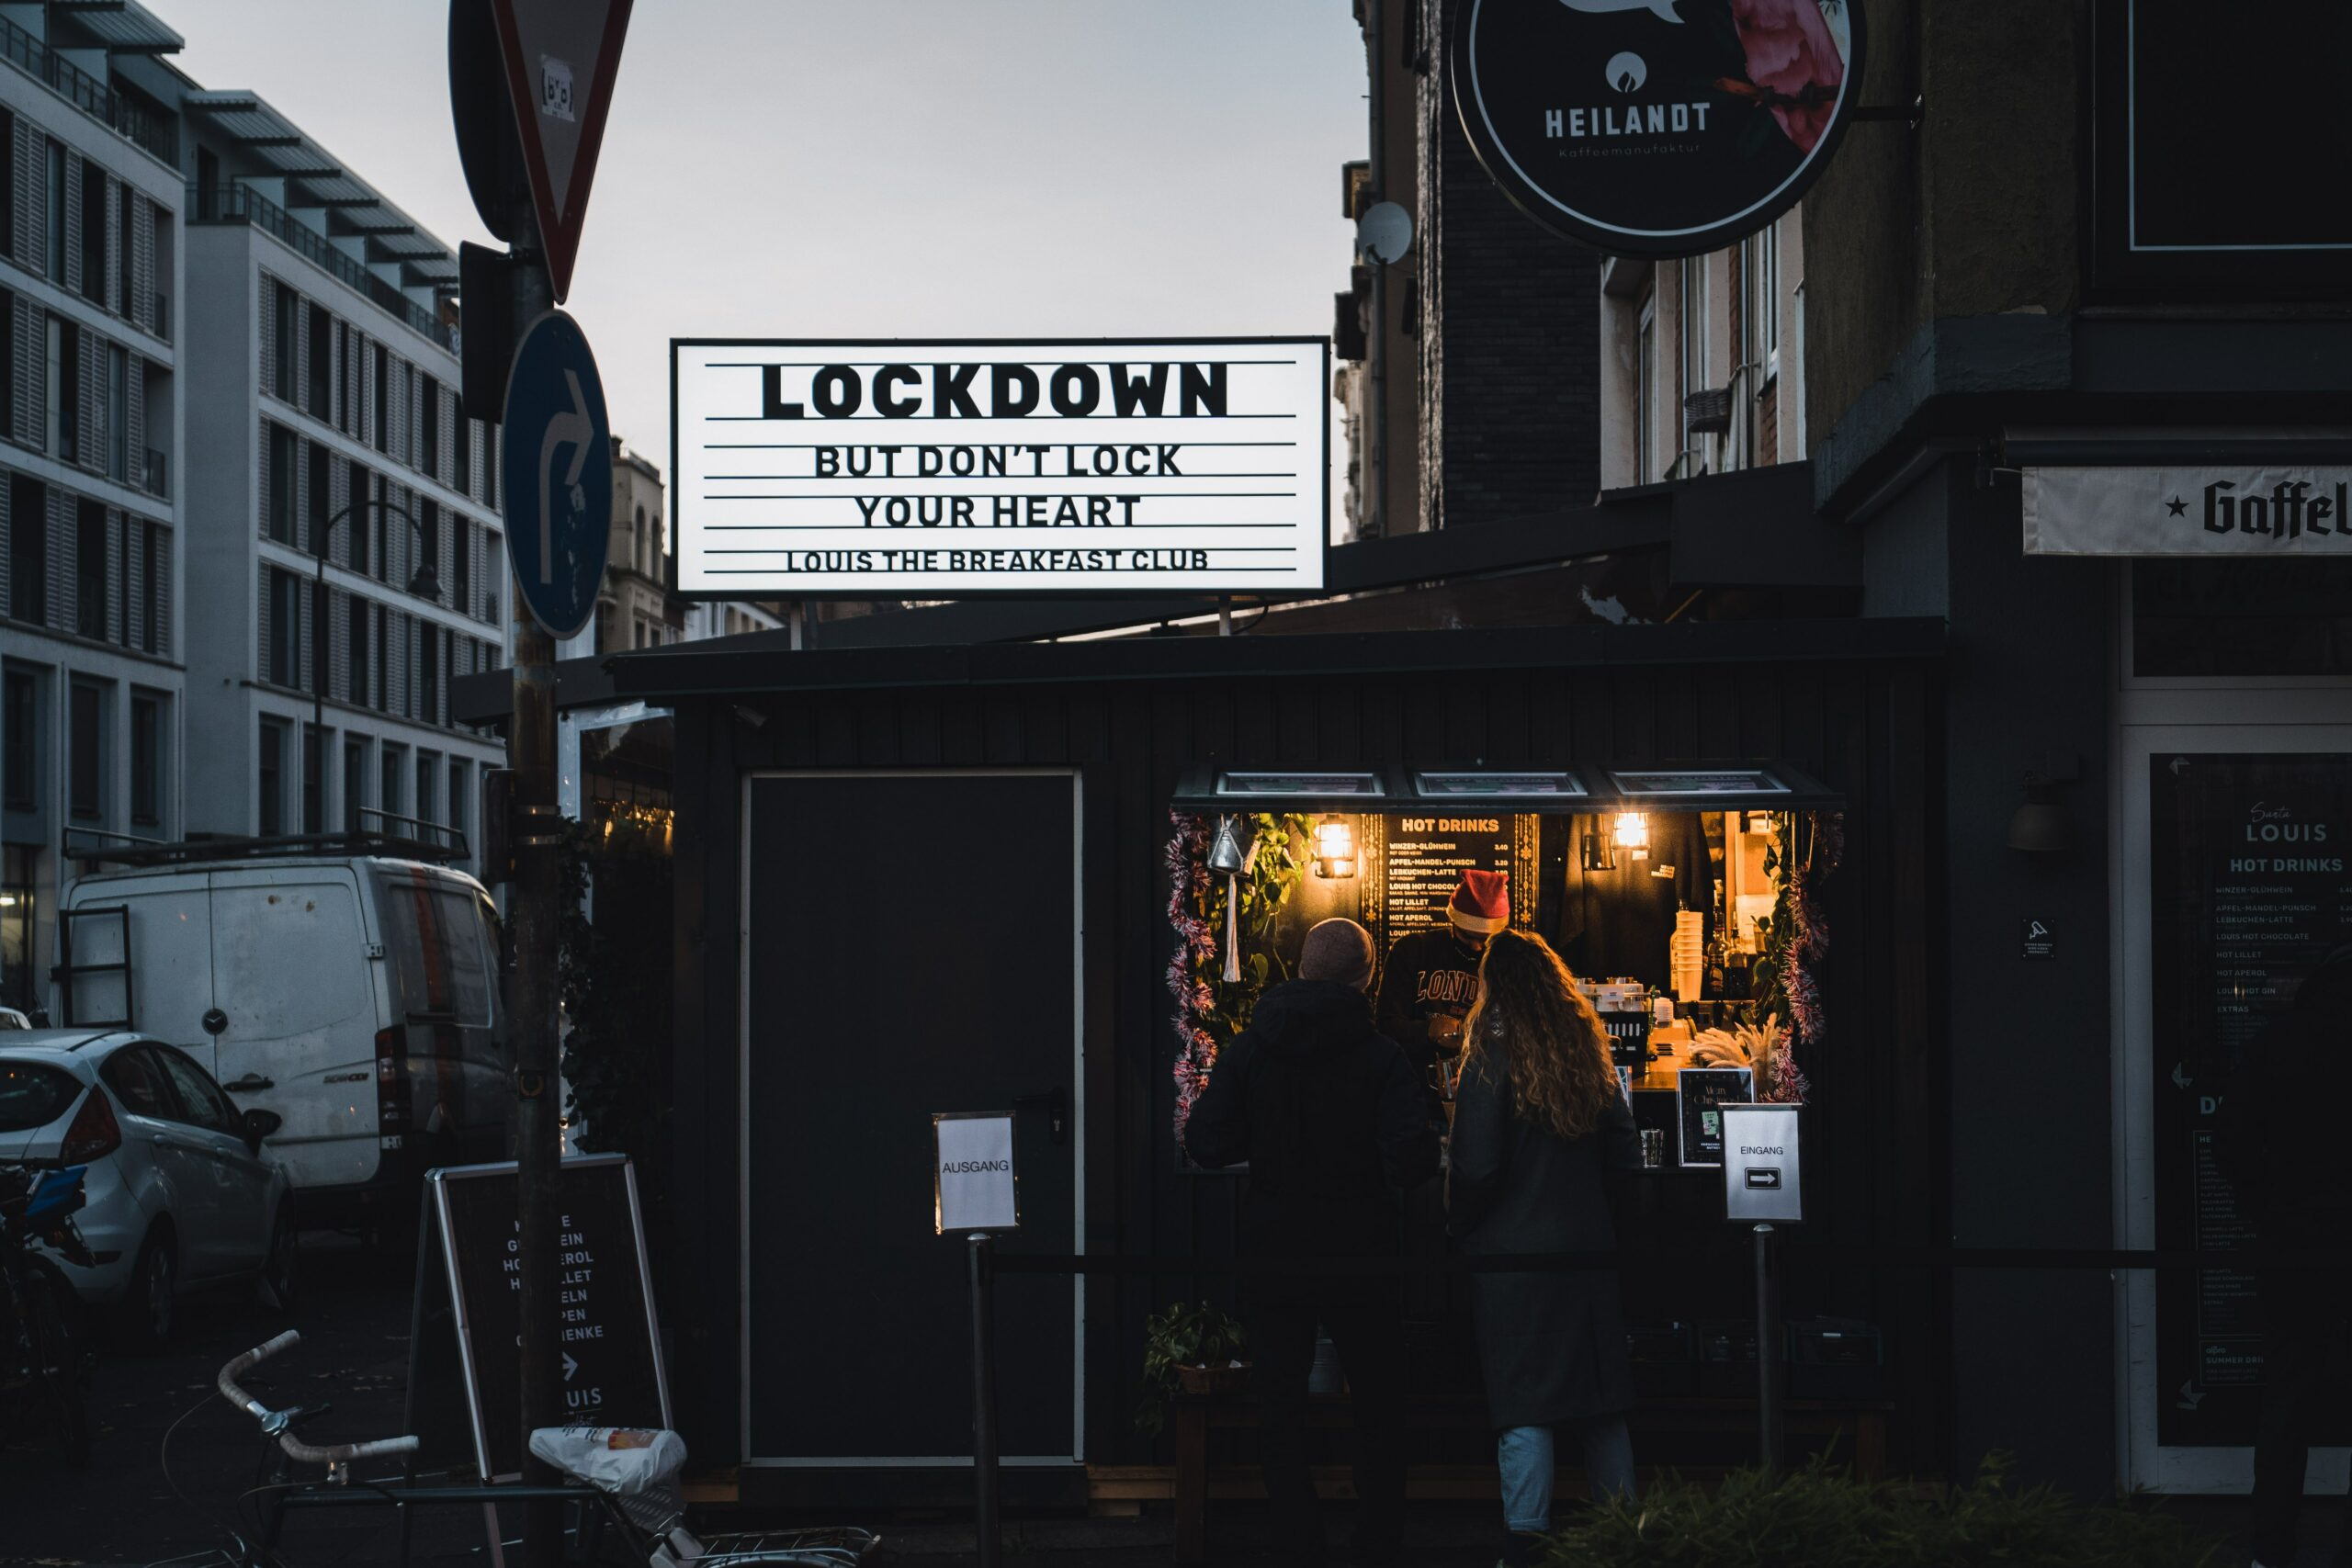 It's Lockdown - But don't lock down your heart